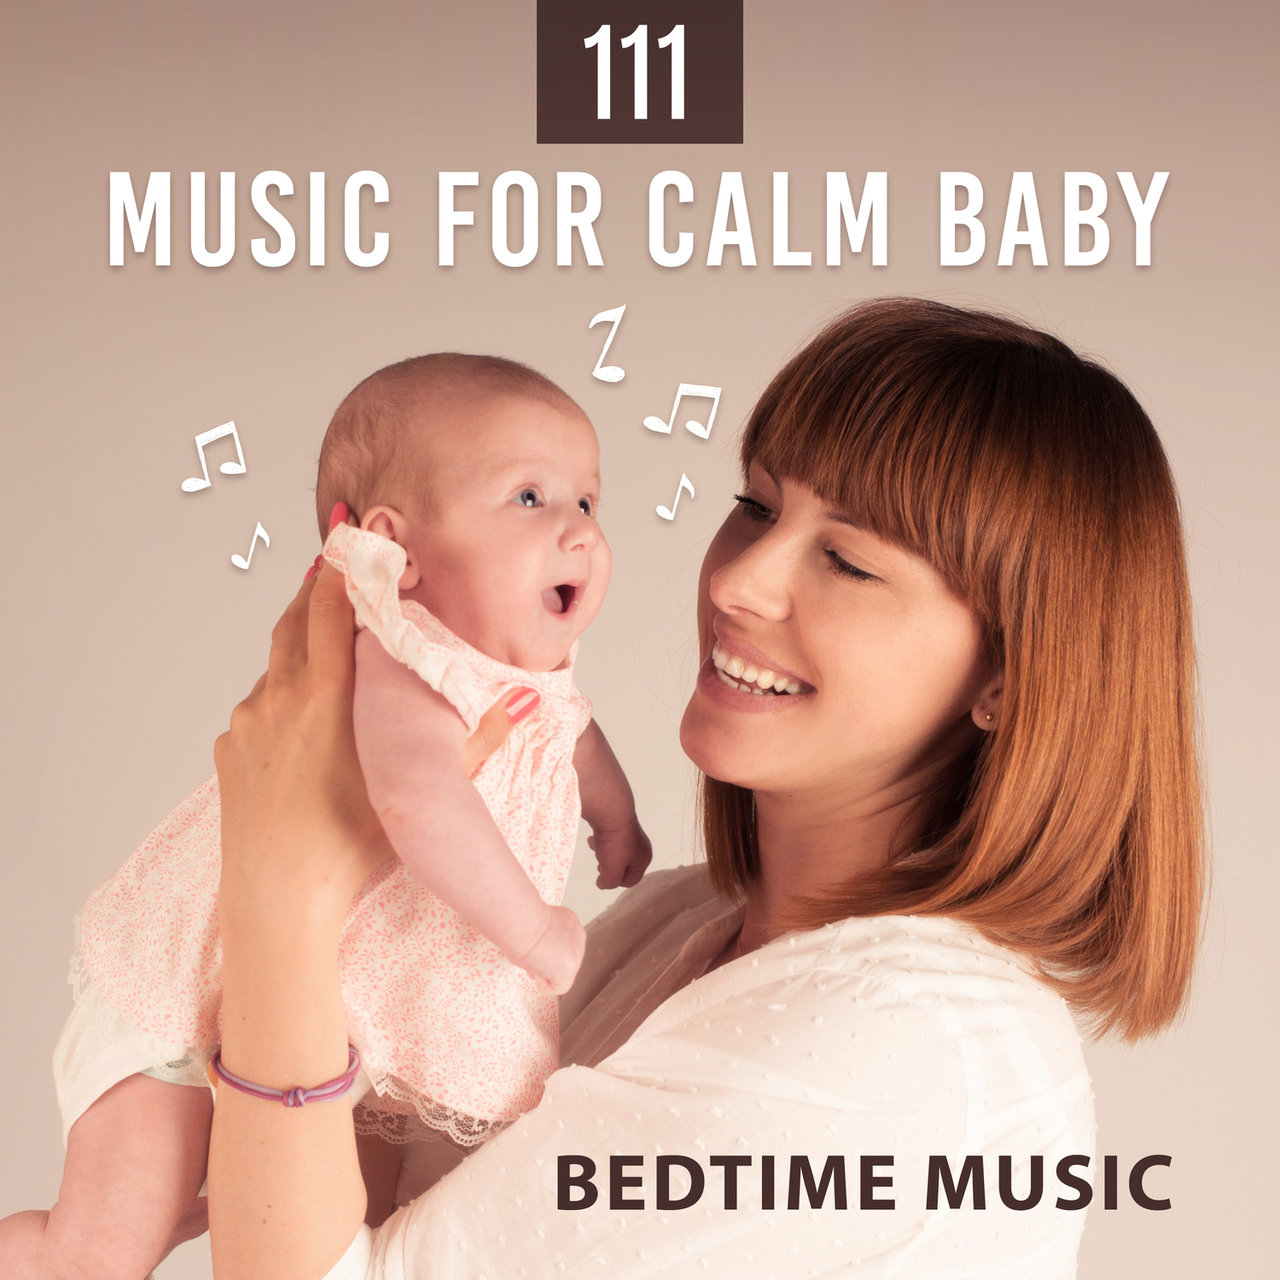 Baby bedtime music - 111 Music For Calm Baby Bedtime Music Nursery Sounds Lullabies Baby Yoga Sleeping Baby Music Tidal